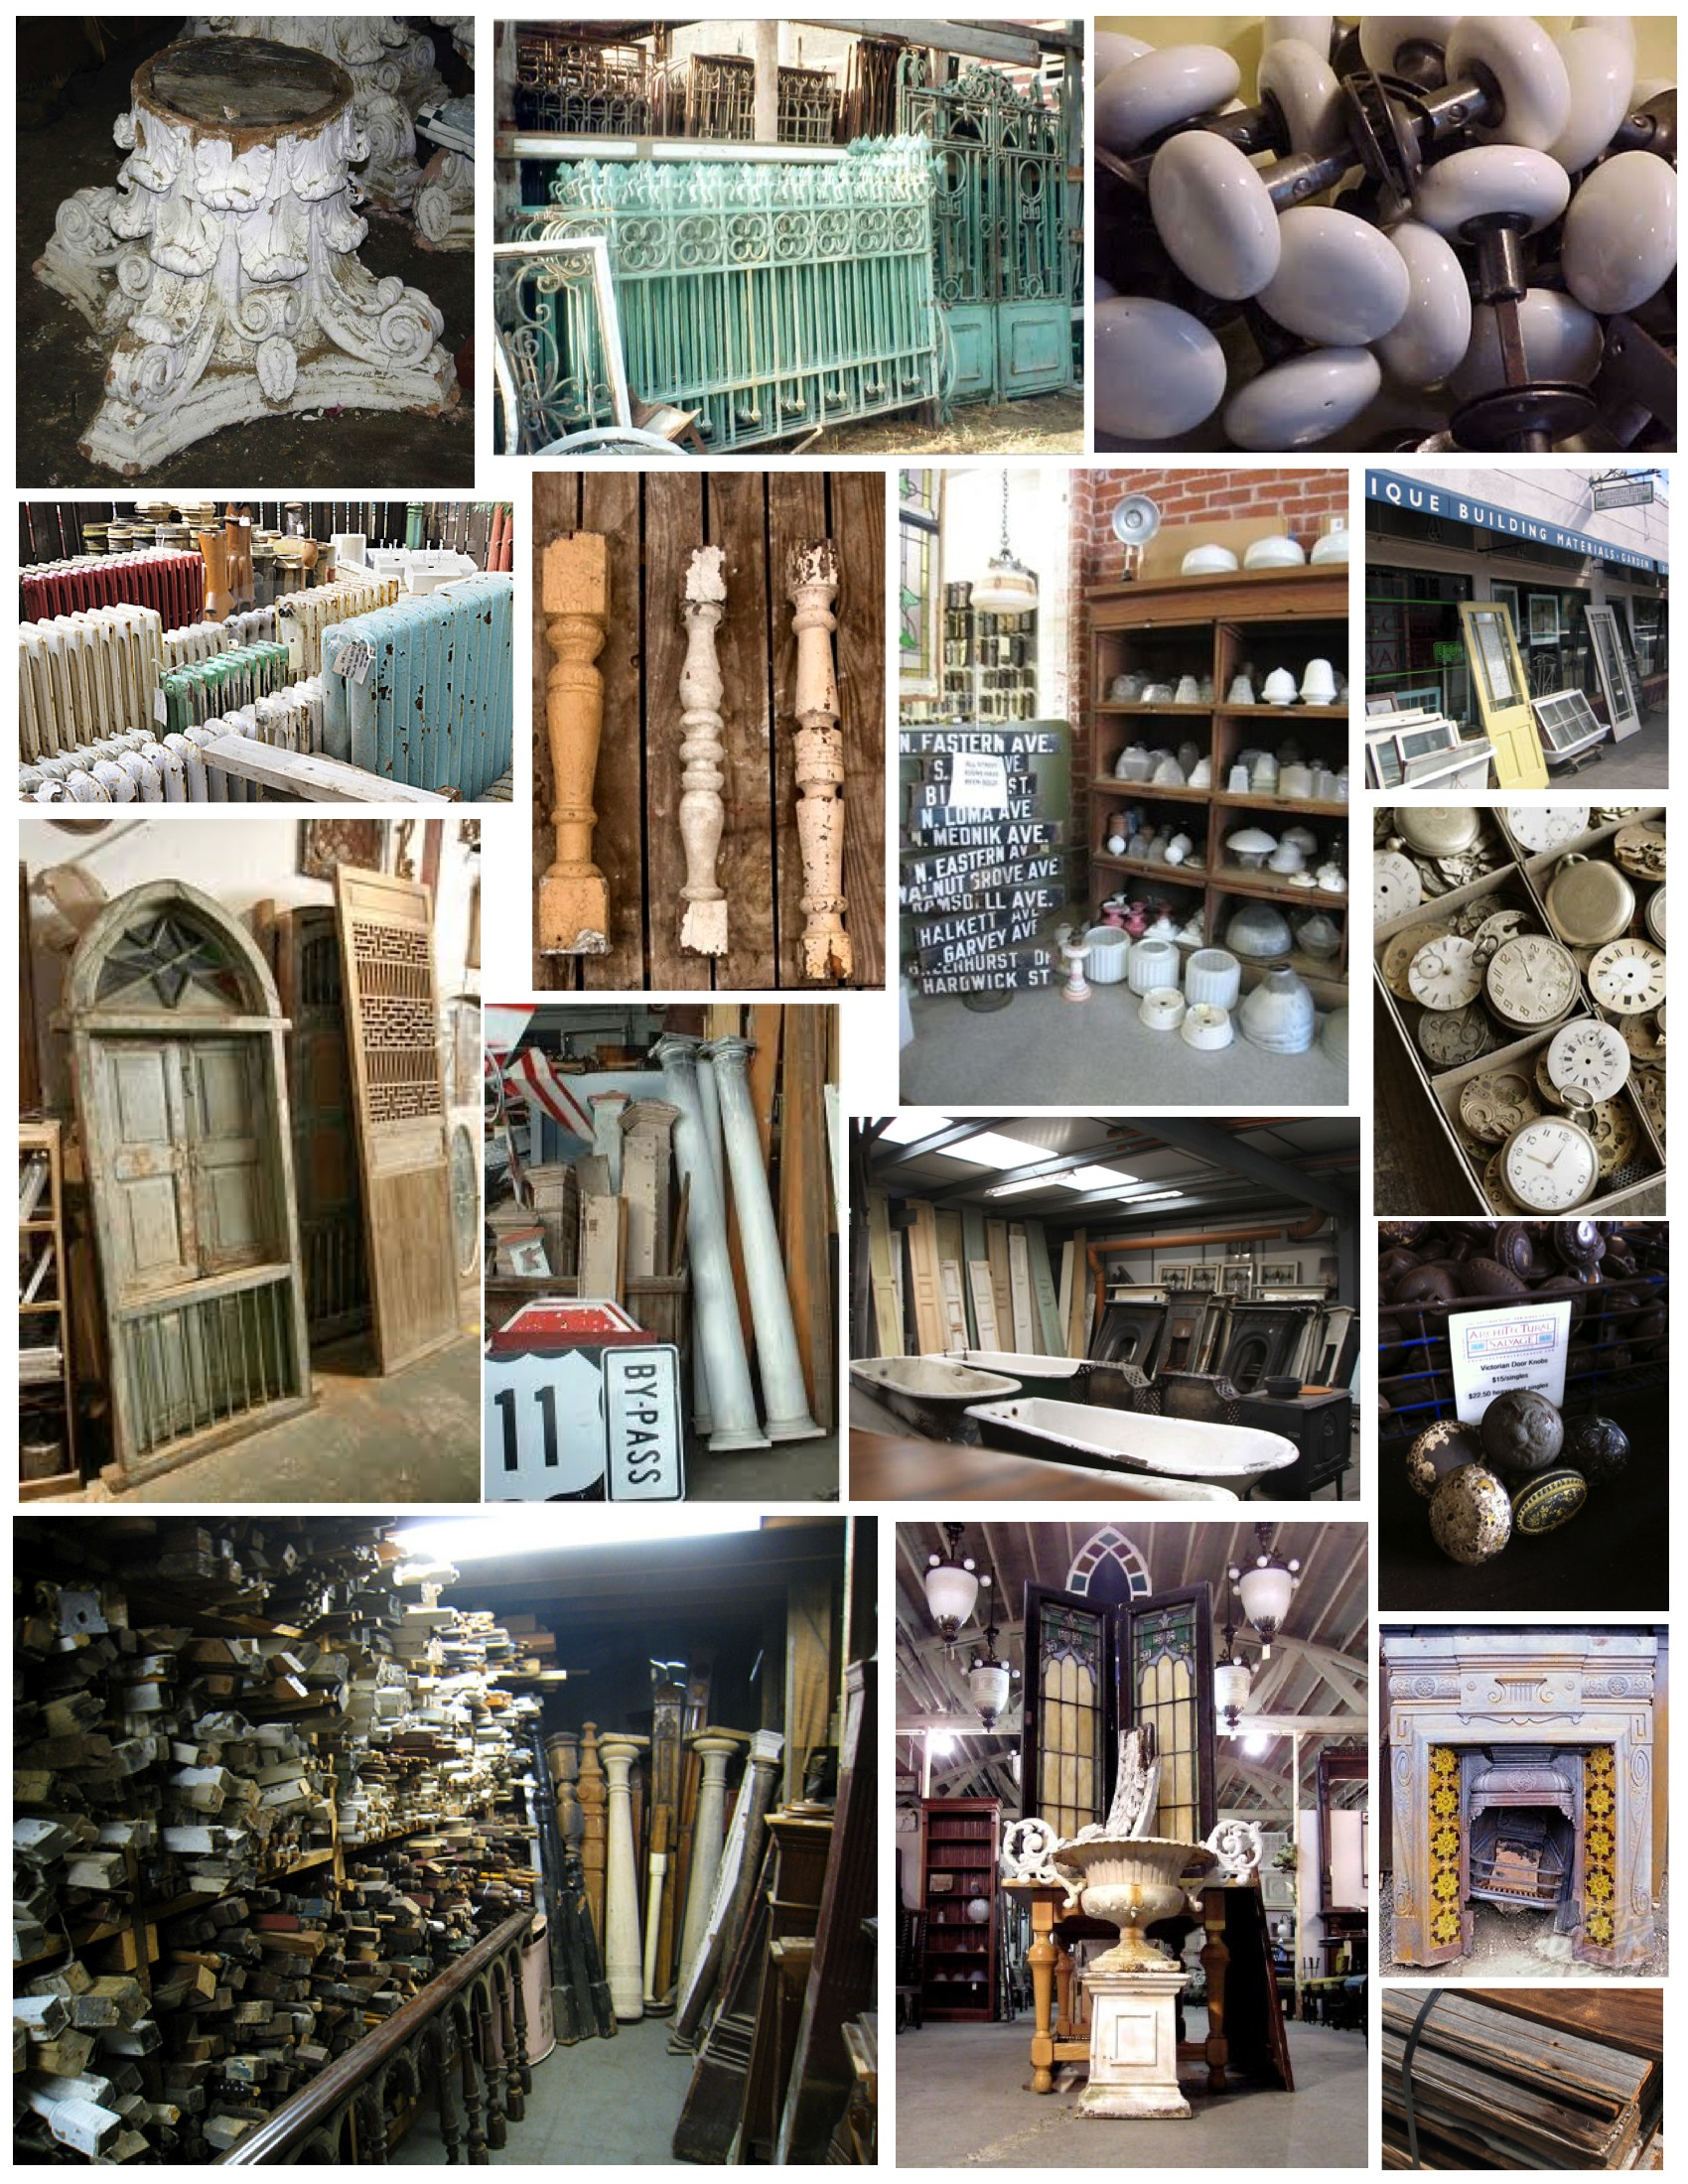 sequencewigj chicago salvage yard architectural. Black Bedroom Furniture Sets. Home Design Ideas